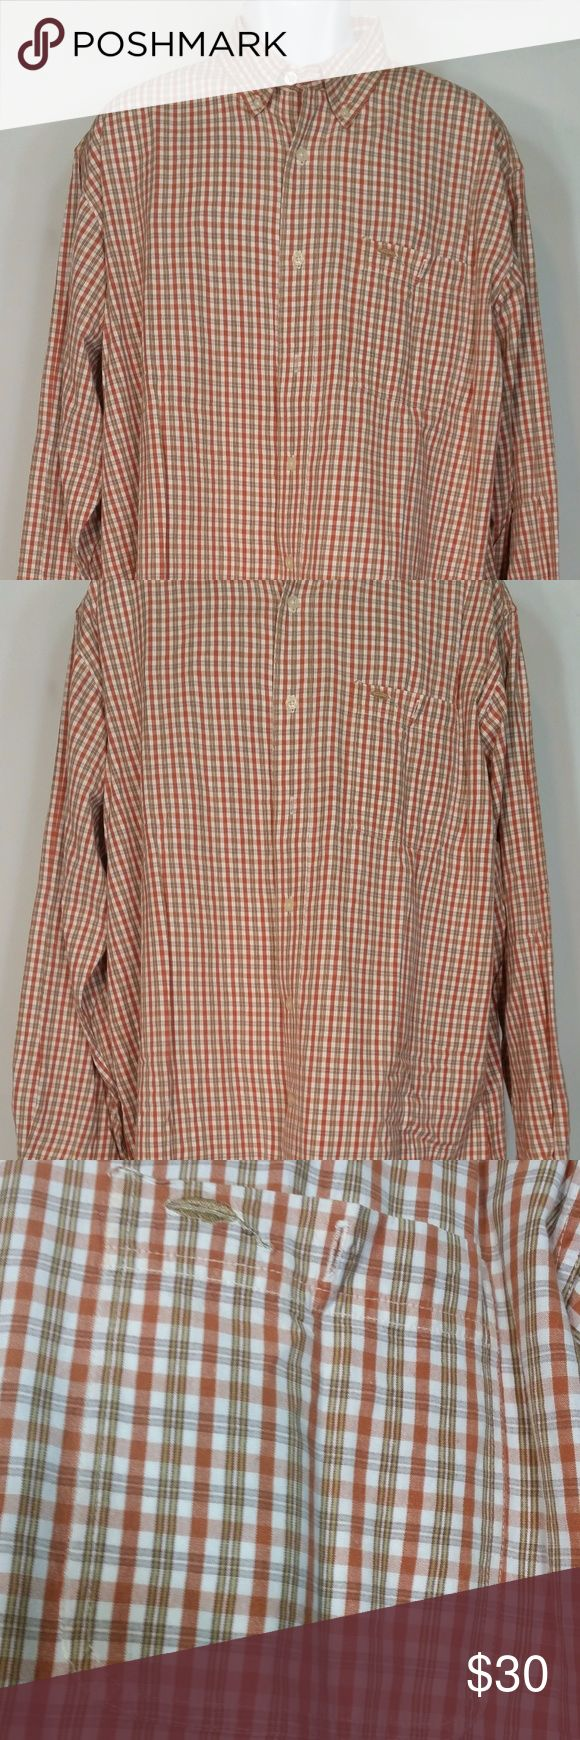 Bob Timberlake orange plaid long sleeve shirt XL men's orange, white and brown plaid, long sleeve button front shirt from Bob Timberlake. Size XL. Made from 100% cotton. excellent condition with no holes or stains. Measurements lying flat: Bust (pit to pit): 27 inches. Length: 33.5 inches. Bob Timberlake Shirts Casual Button Down Shirts